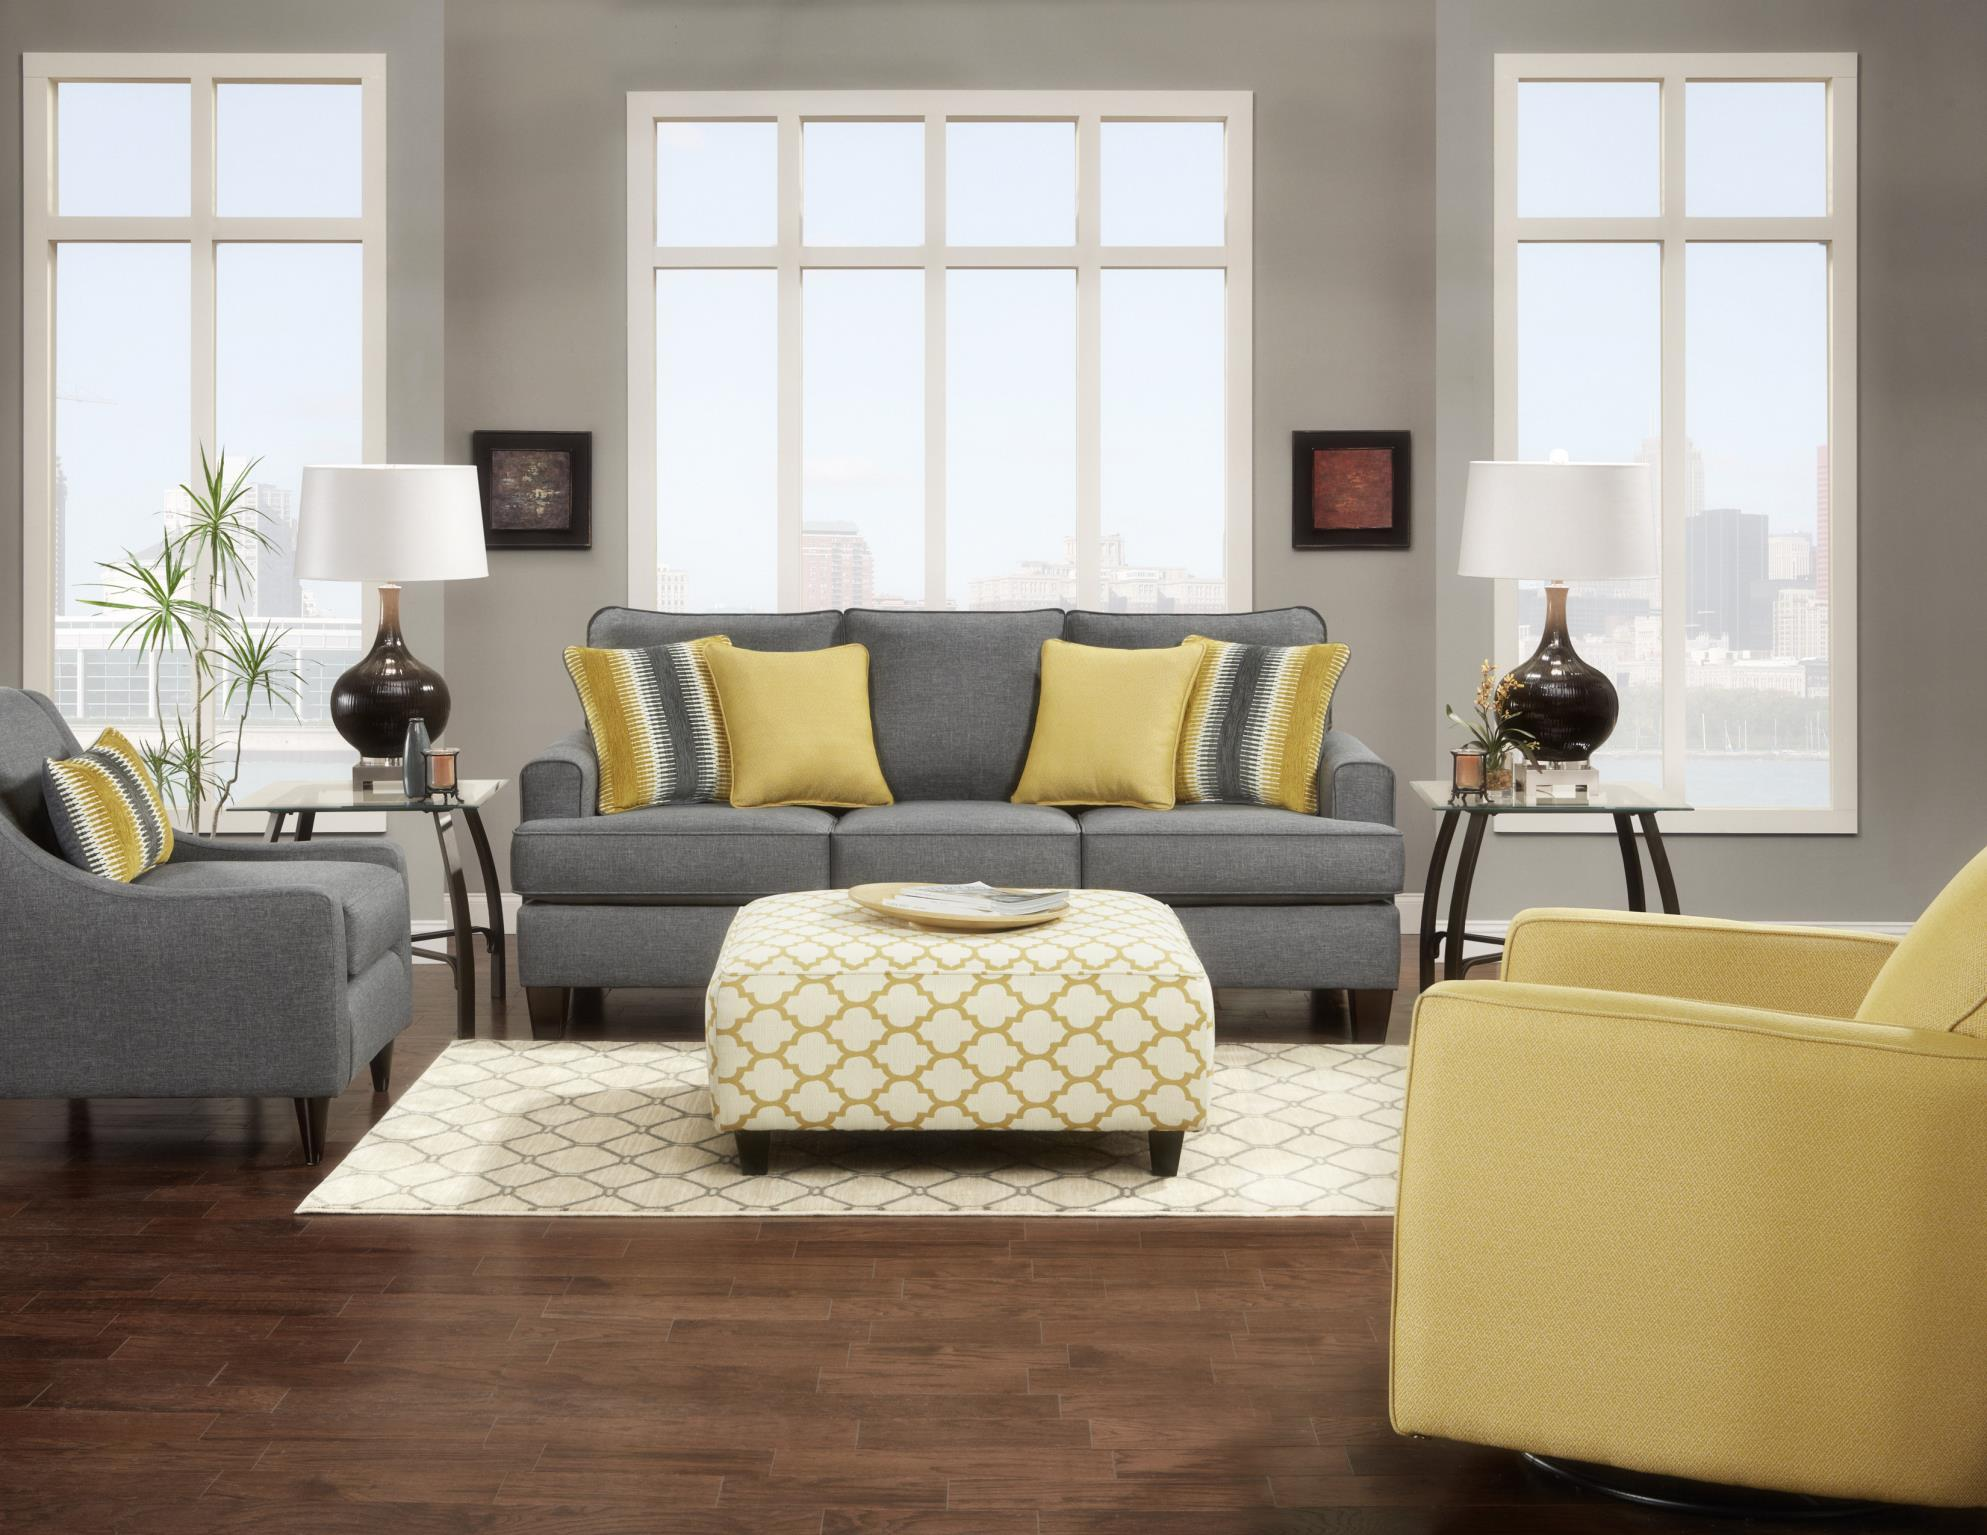 Fusion Furniture 2600 Stationary Living Room Group Olinde 39 S Furniture Stationary Living Room